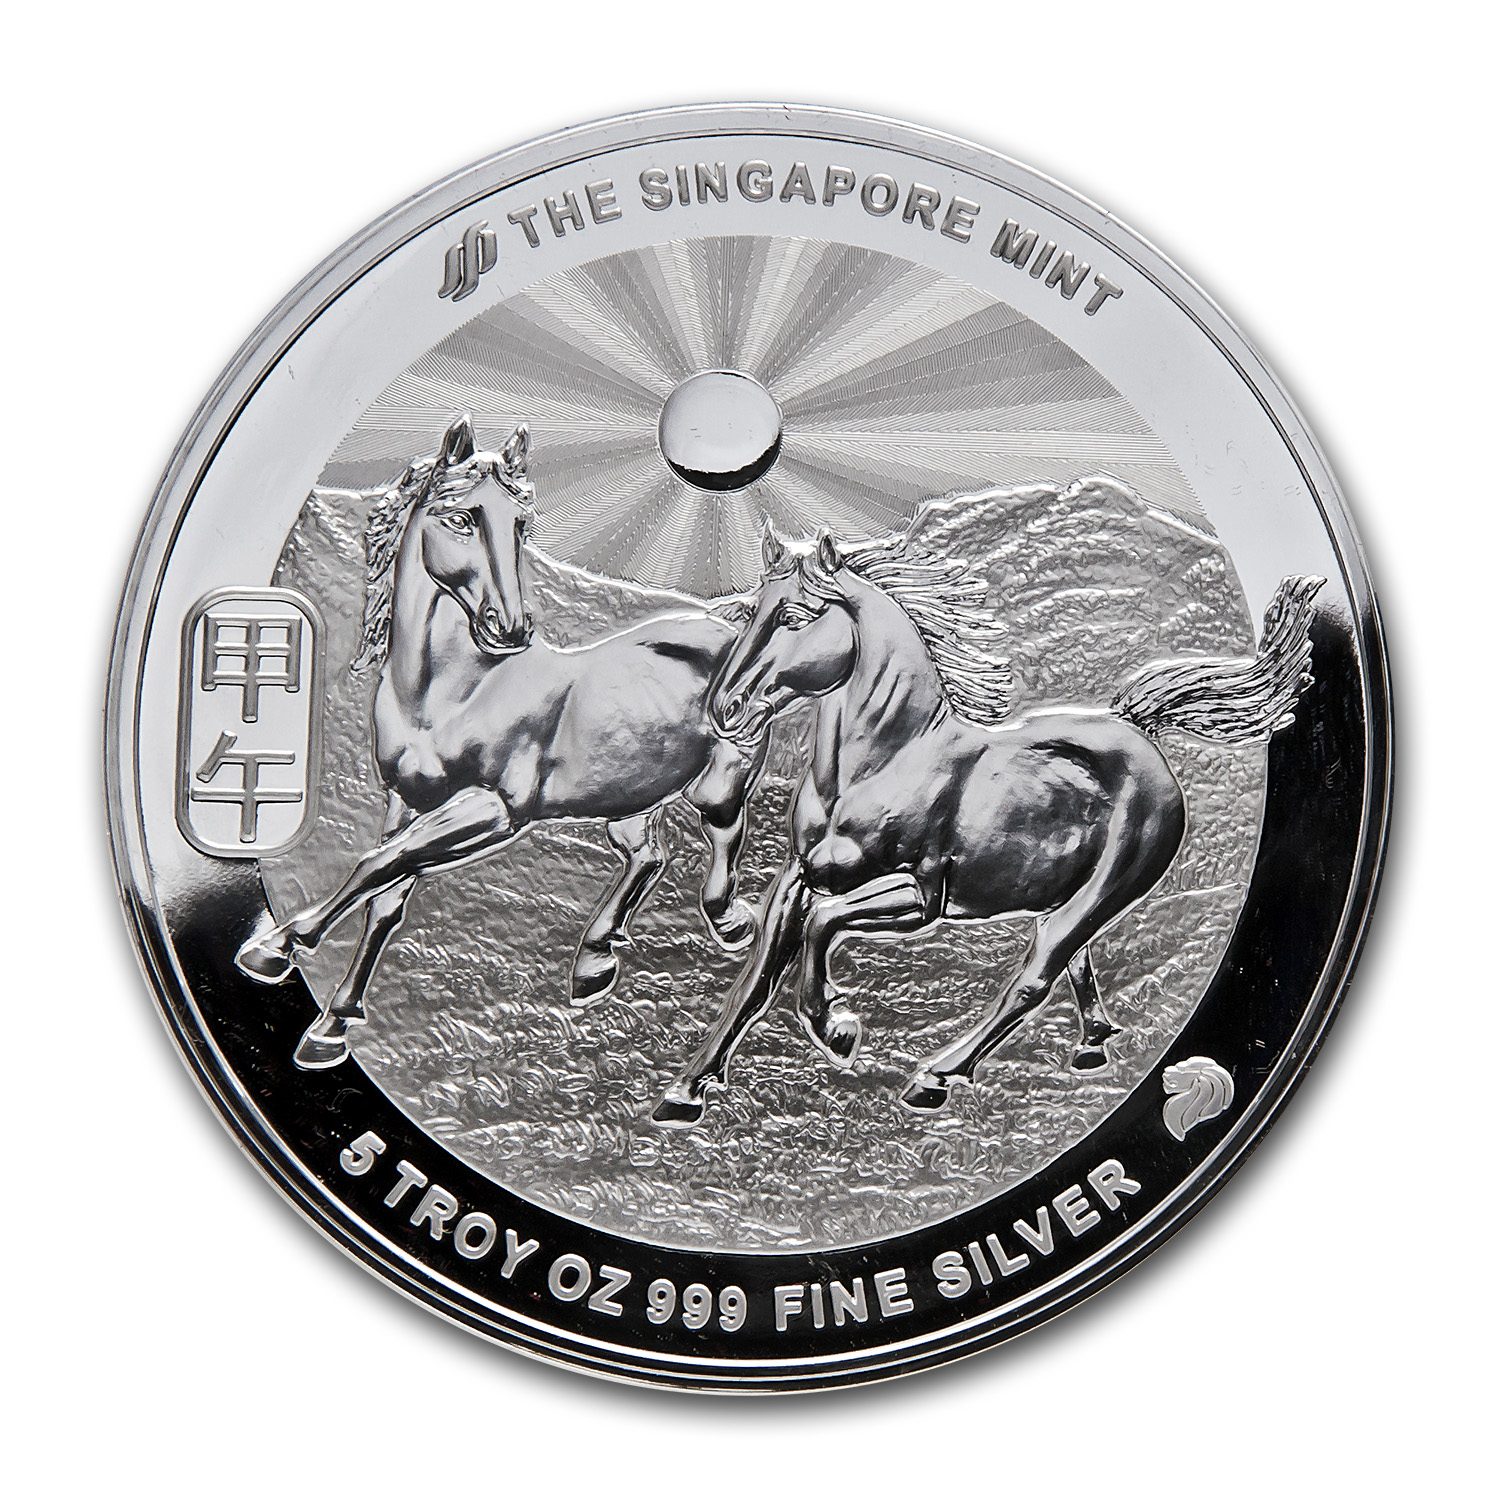 2014 Singapore 5 oz Silver Medallion Year of the Horse Proof